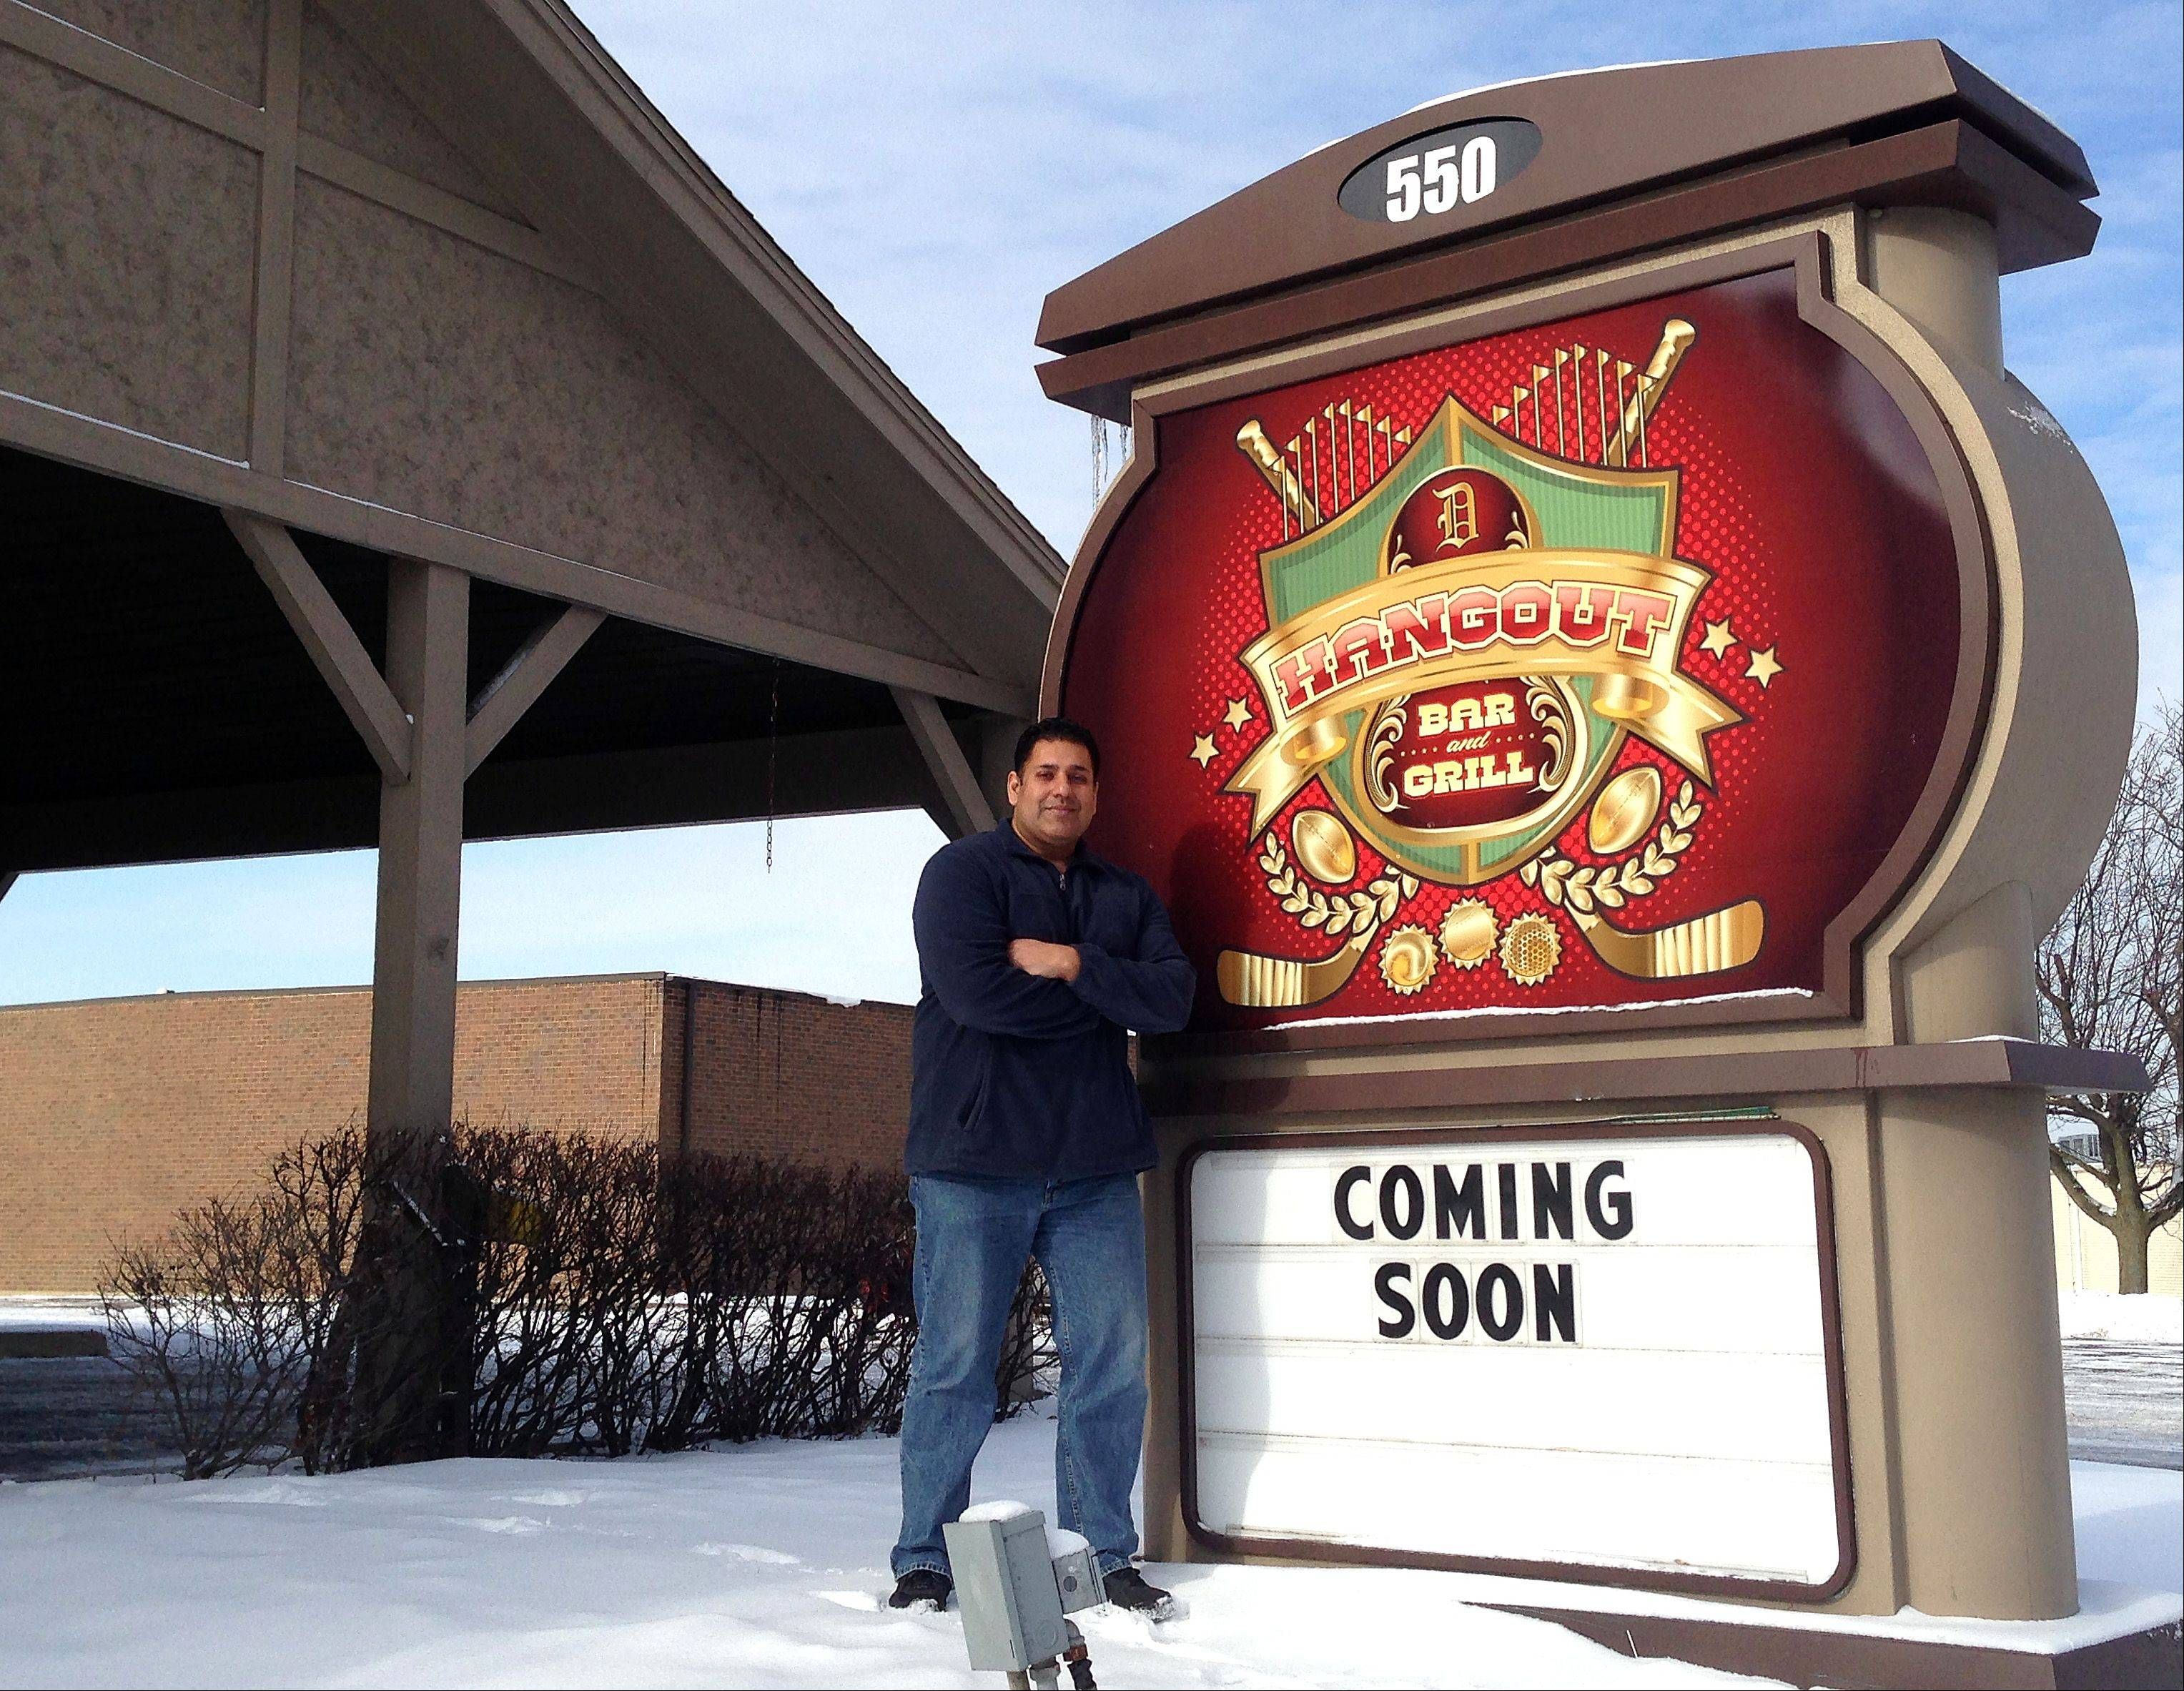 D Hangout Bar and Grill at 550 S. McLean Blvd., Elgin, will open Jan. 3, pending final health and building inspections, said owner Mike Deol of Streamwood, a former professional wrestler.